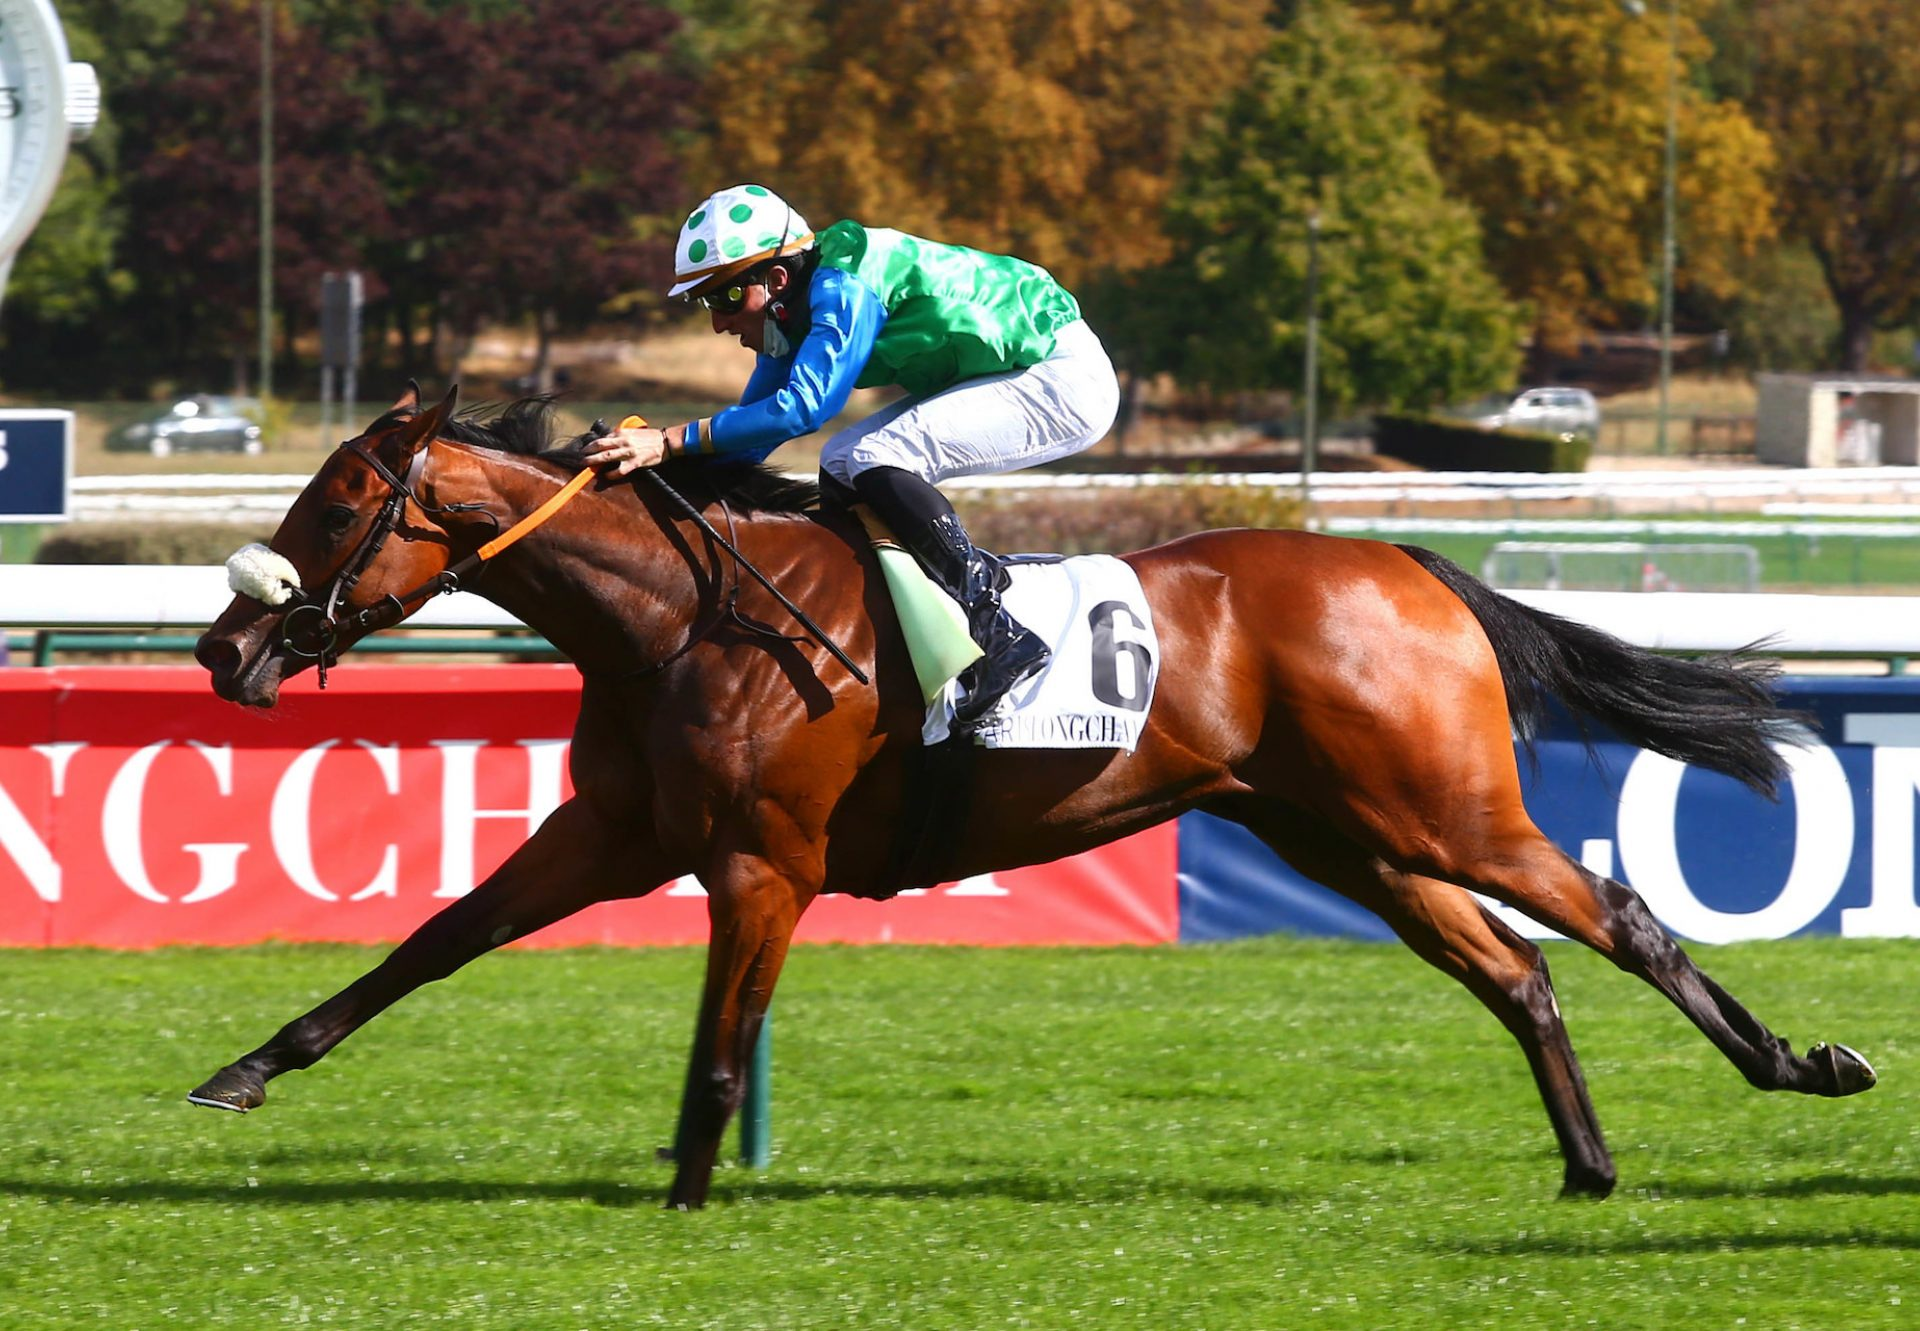 King's Harlequin (Camelot) Winning The Group 3 Prix D'Aumale at Longchamp